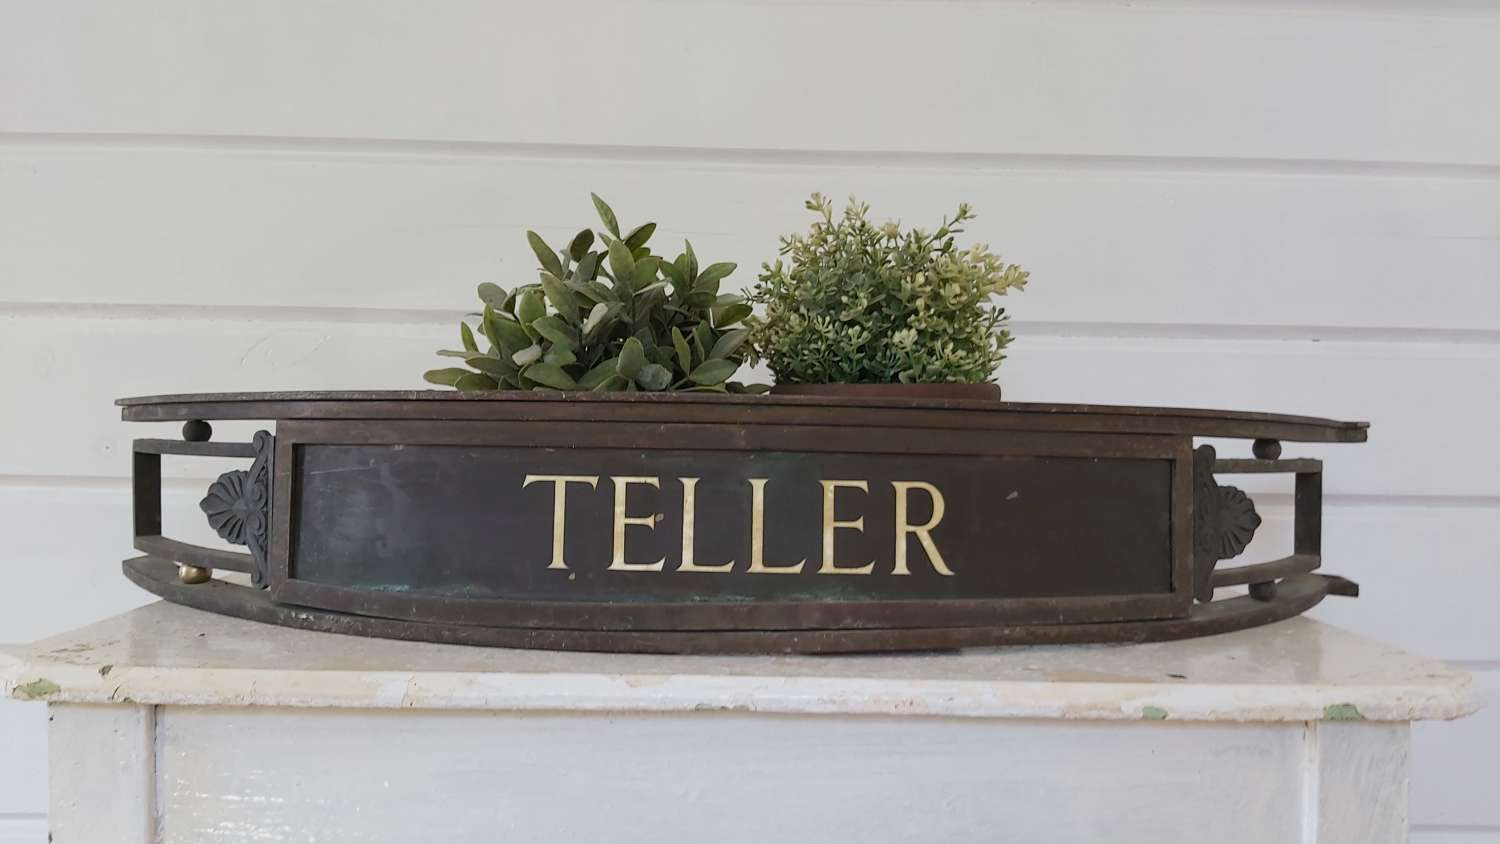 Early 20th century Bank Tellers sign